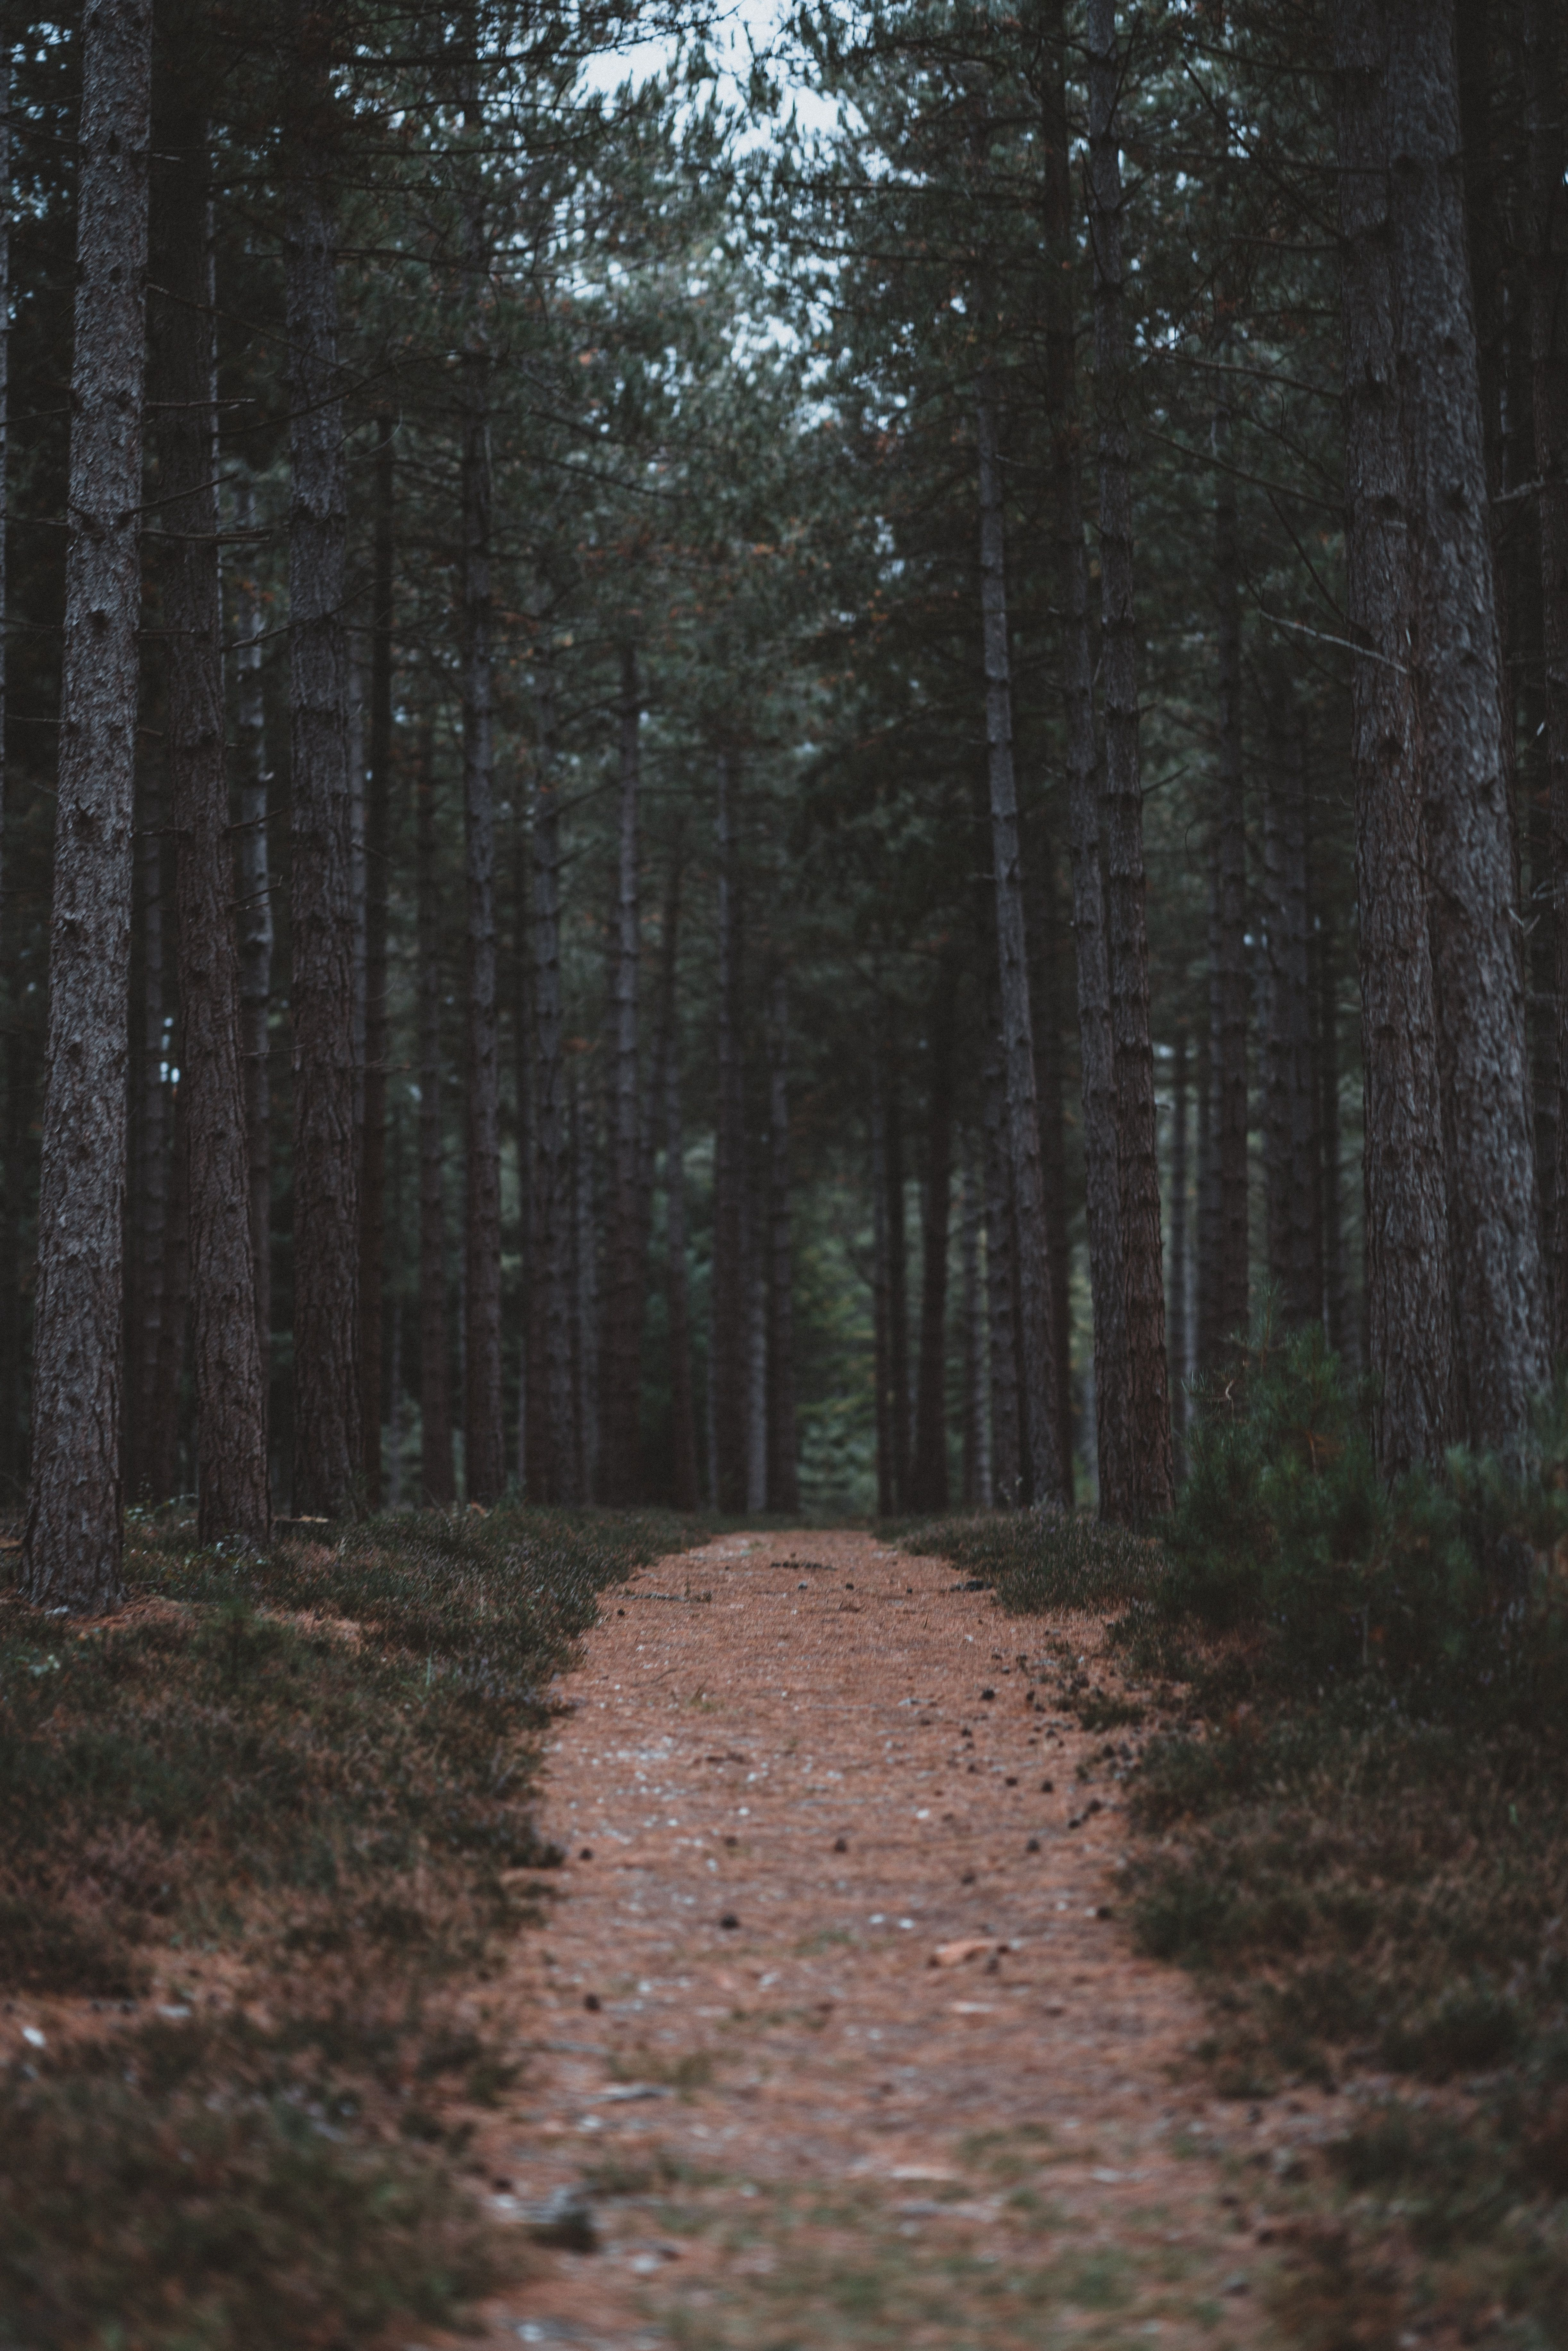 New Forest National Park United Kingdom Brown Pathway Between Trees Sony Ilce 7rm3 D7e1e7 Forest Wallpaper Forest Pictures Forest Trail